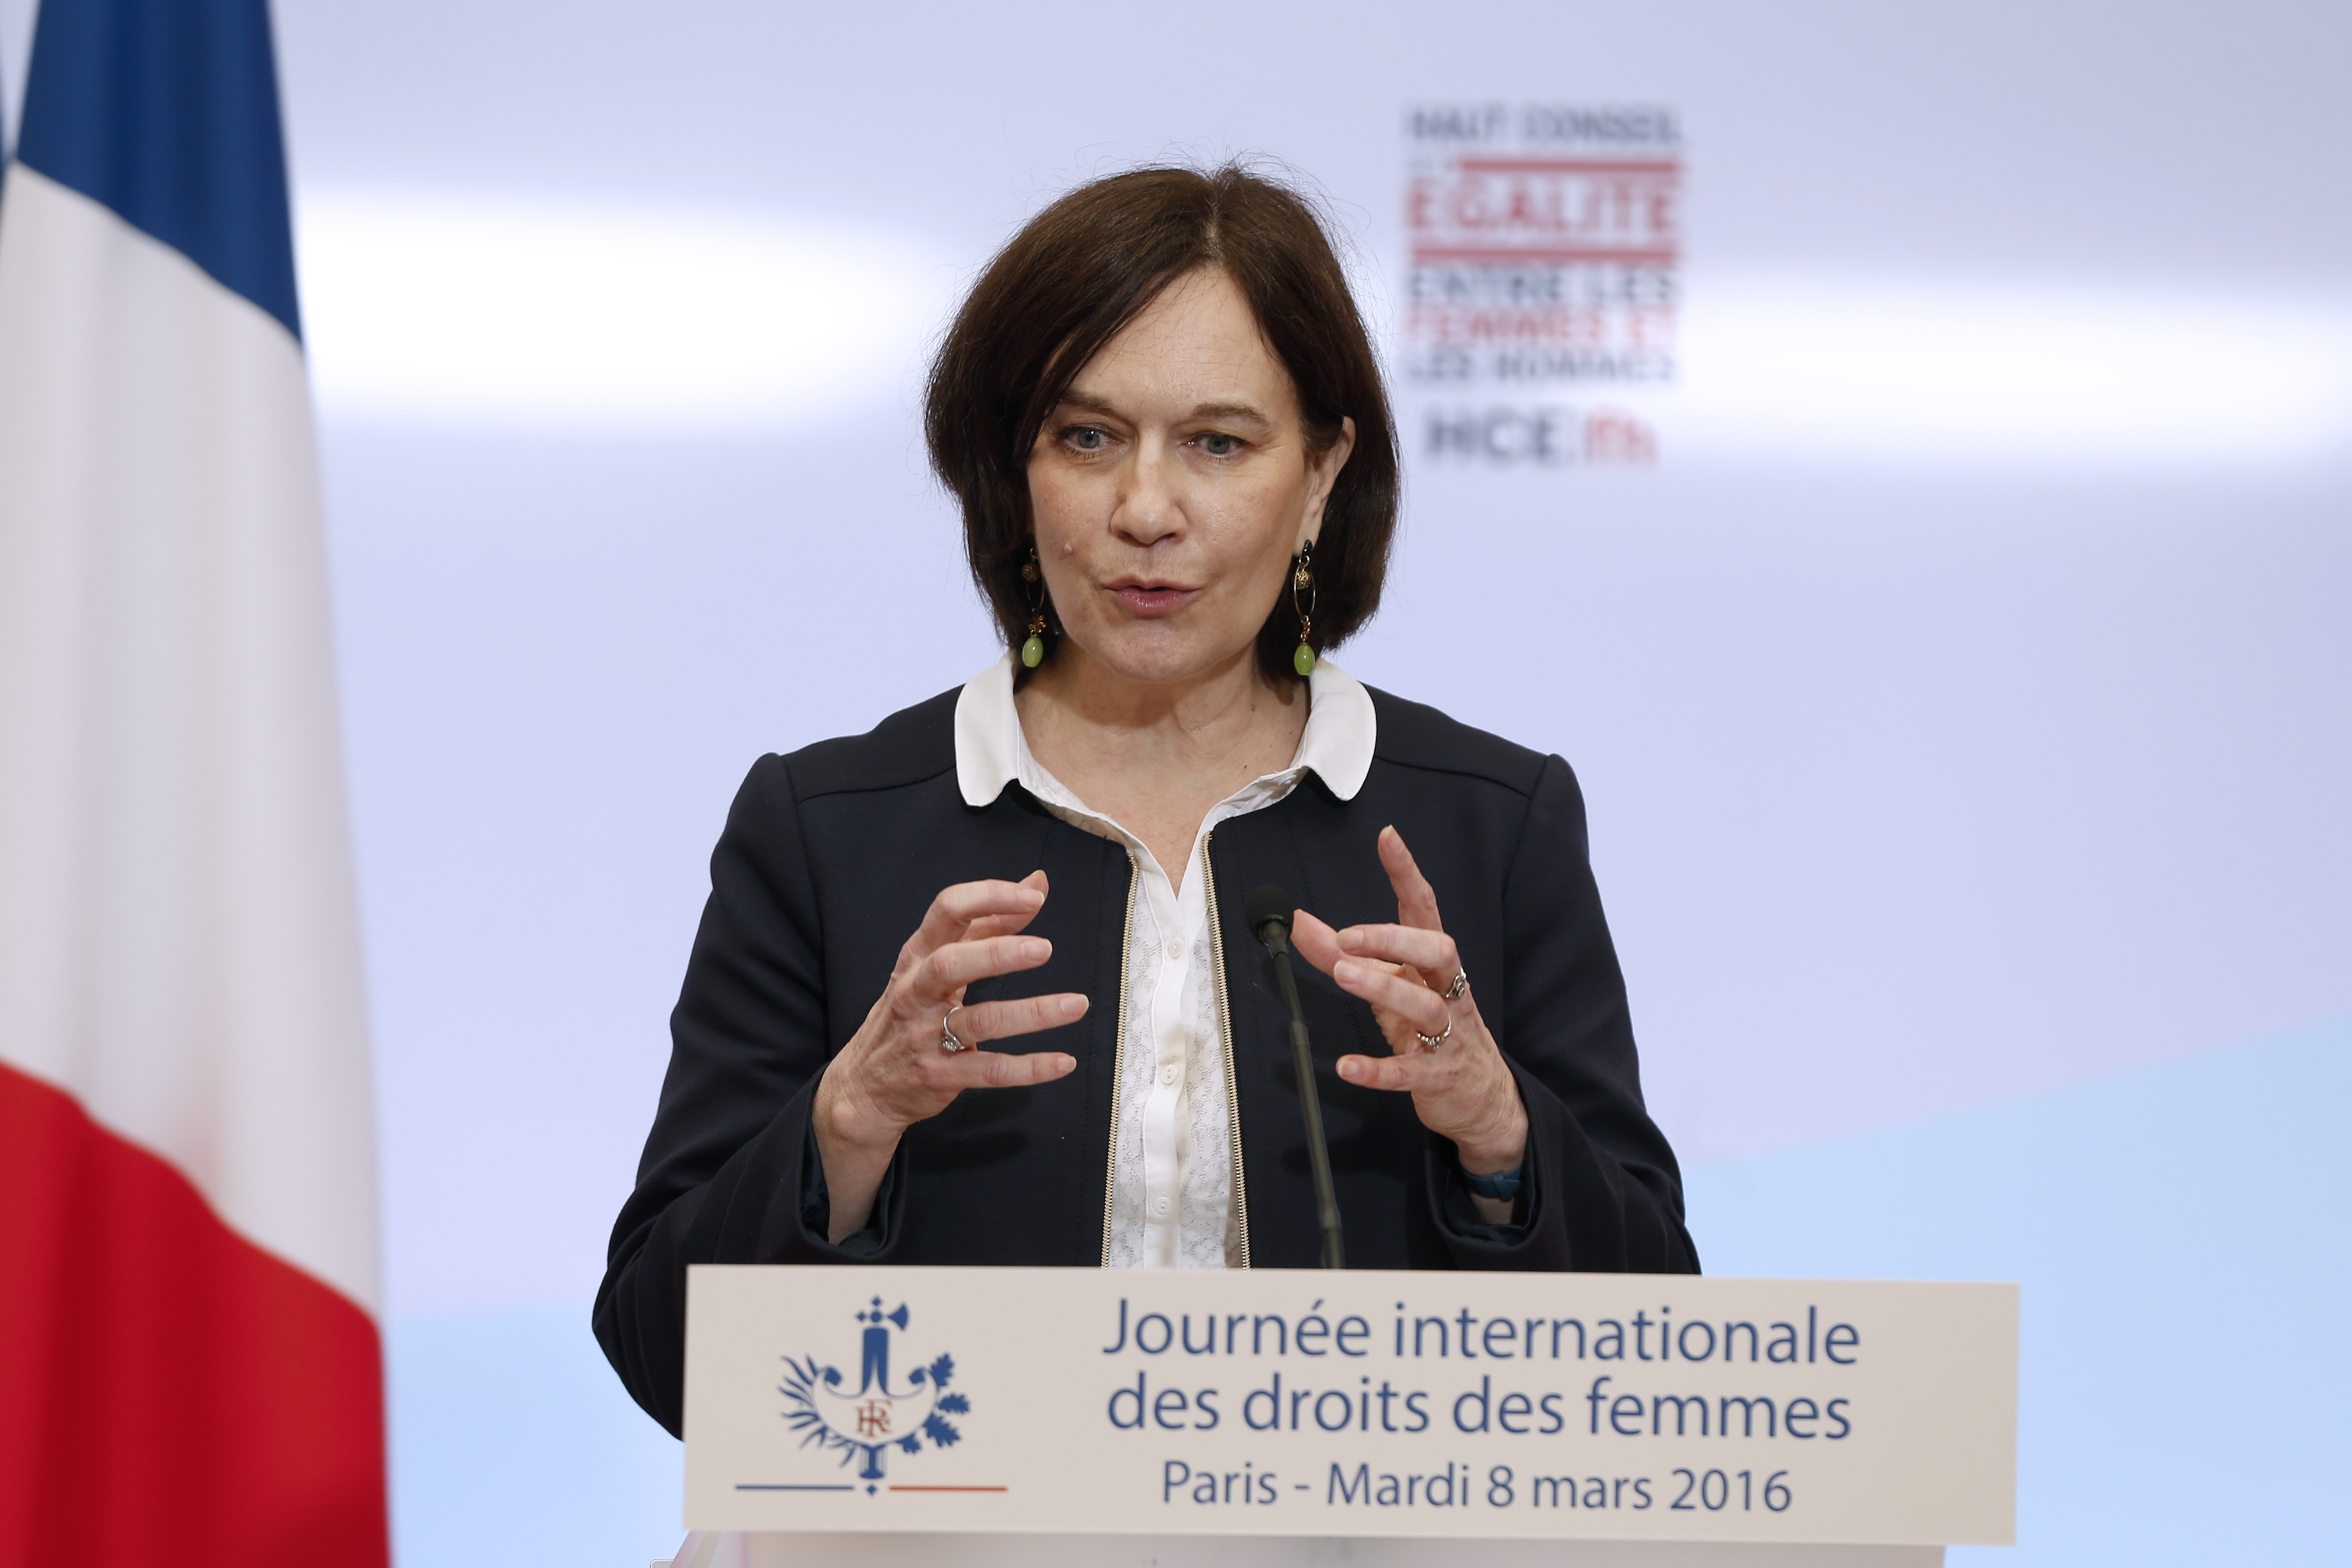 French Minister for Families, Children and Women's Rights Laurence Rossignol delivers a speech during the launching of the High Council for Equality between Women and Men on International Women's Day at the Élysée Palace in Paris on March 8, 2016